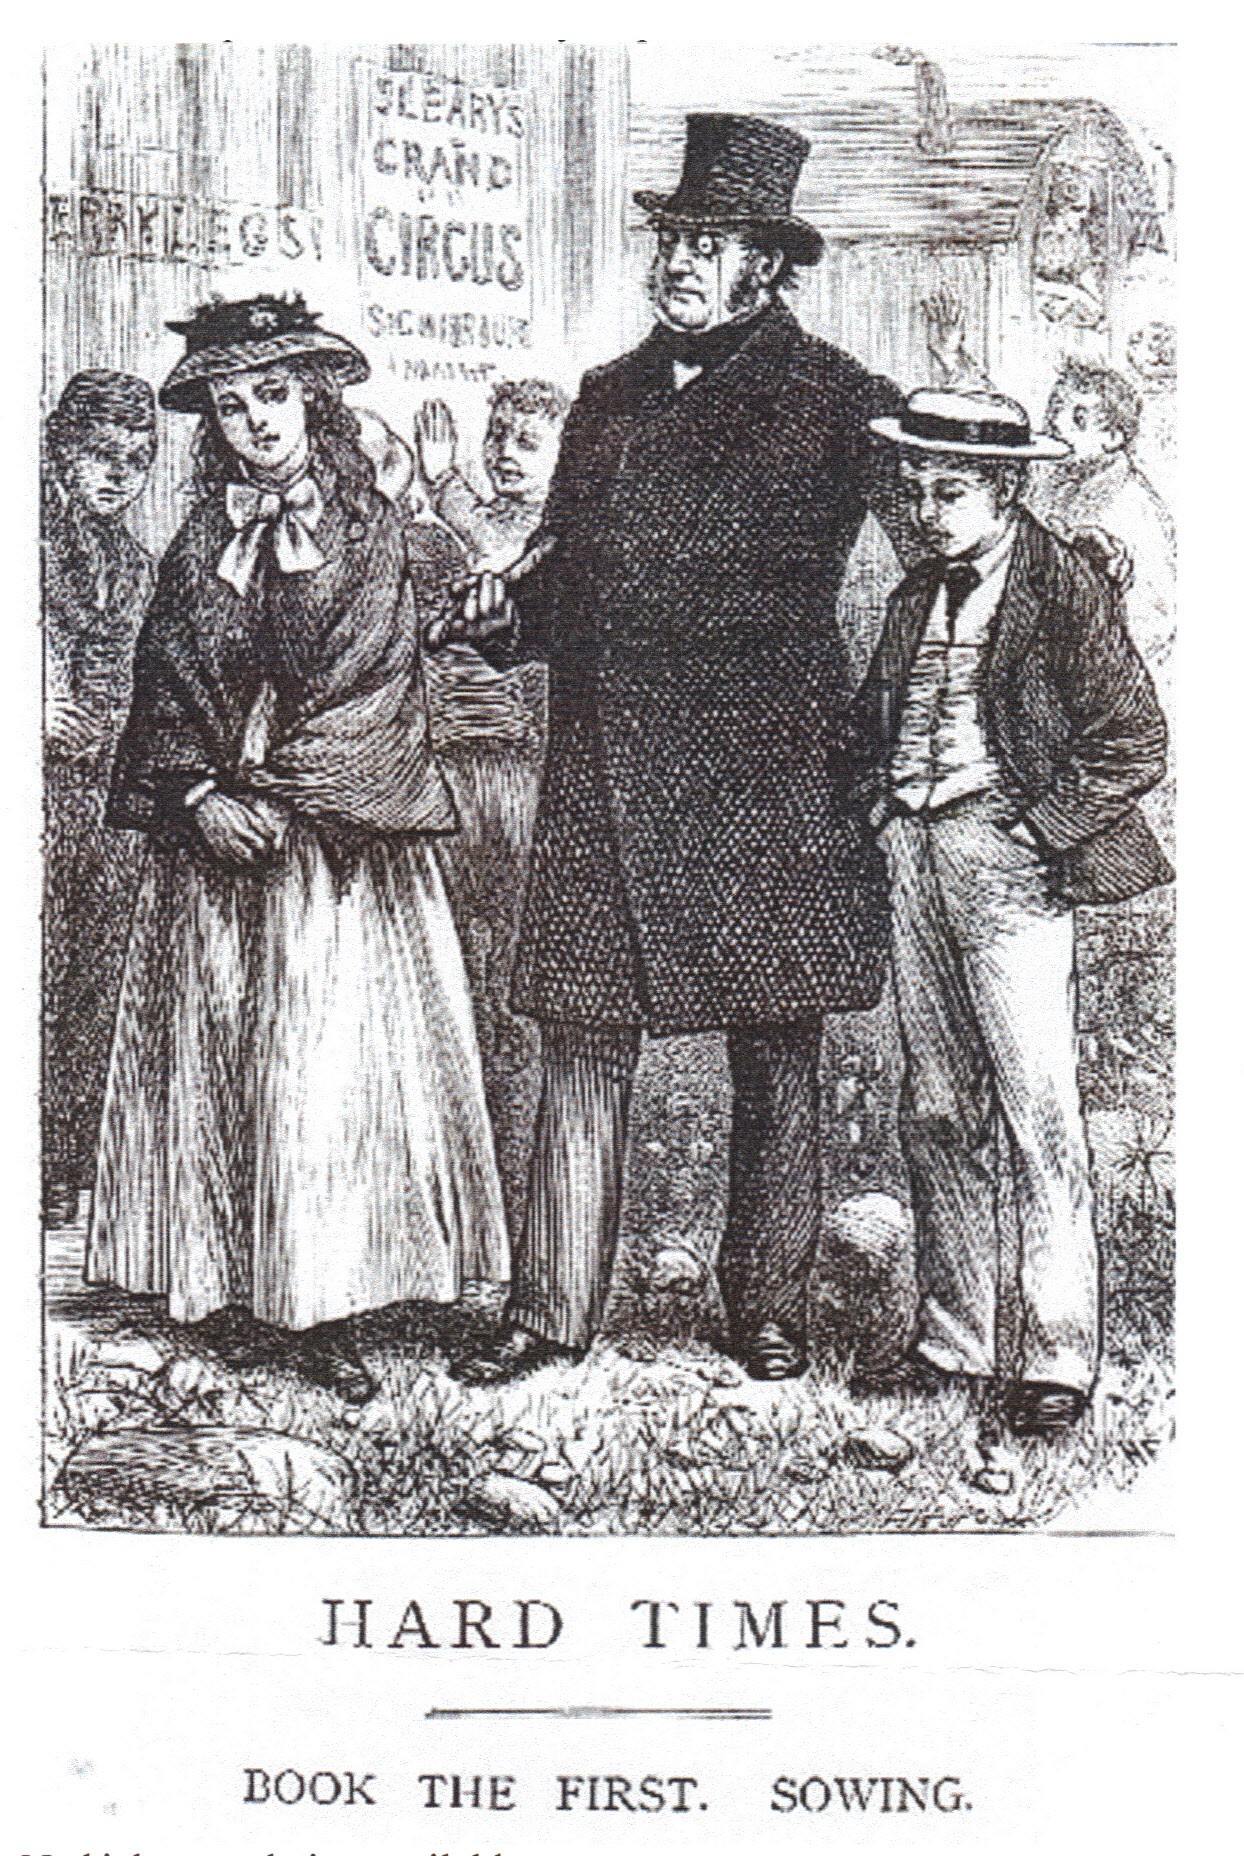 an analysis of hard times by dickens Charles dickens in his novel hard times places a great emphasis on the need  for morality in the british educational system and the decrease of utilitarianism.